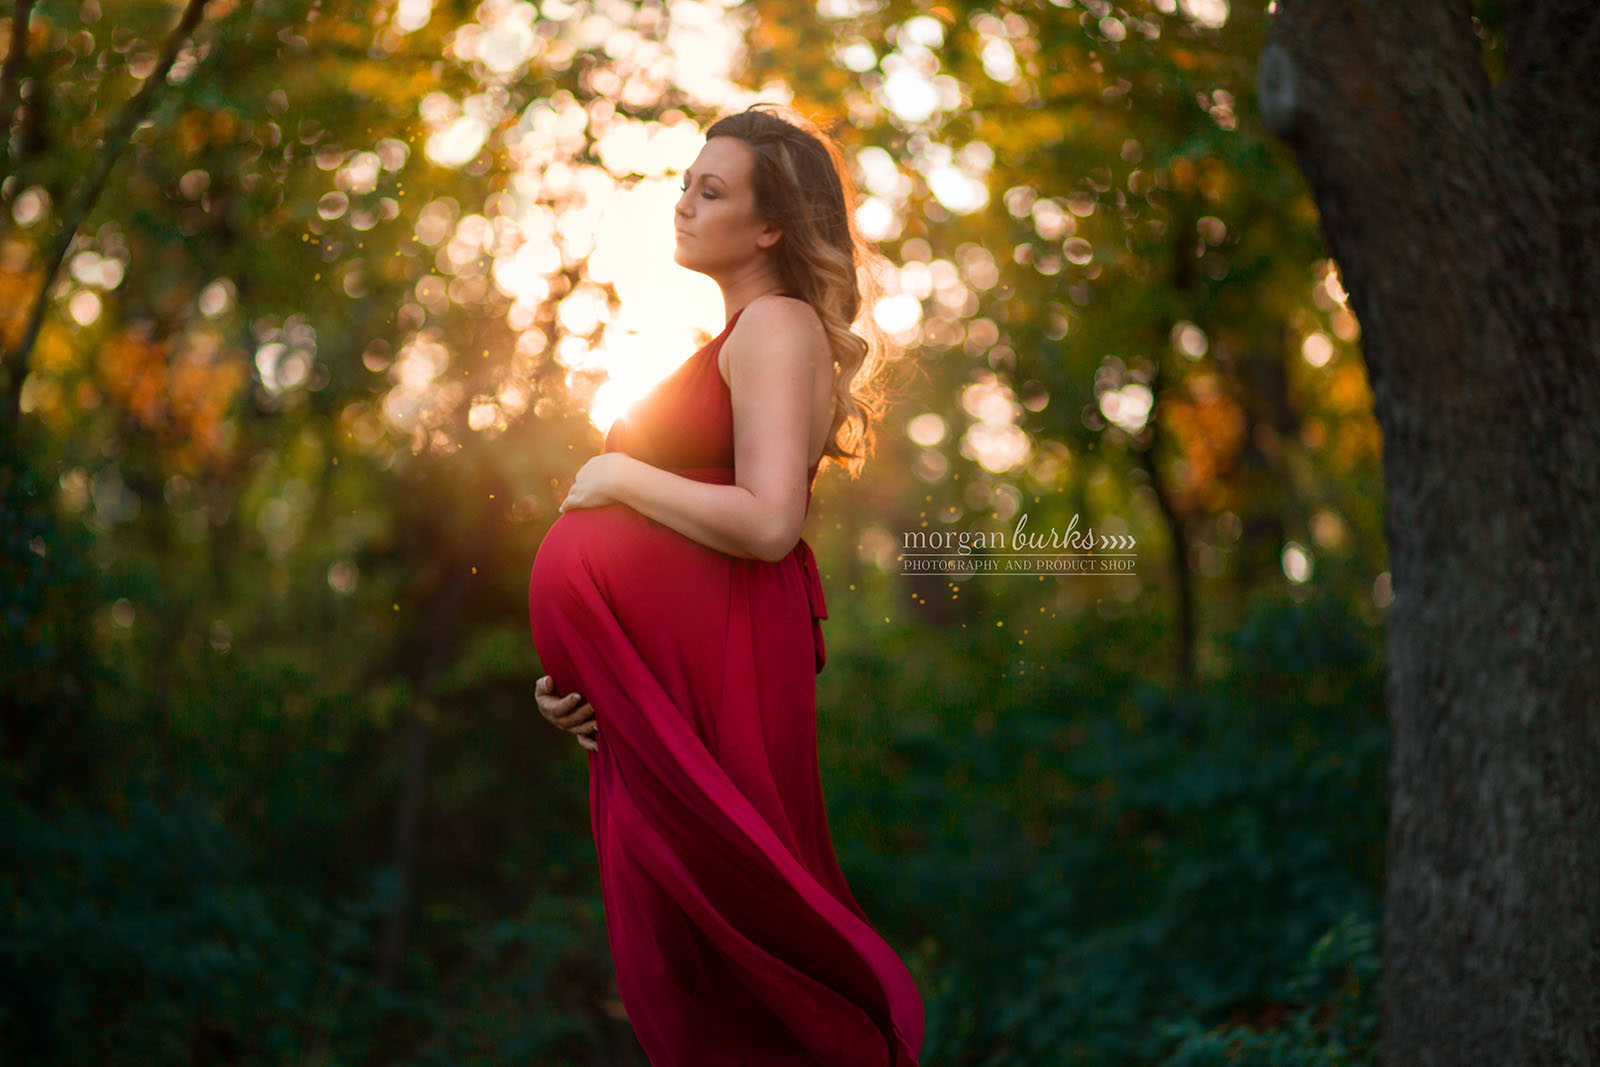 Manhattan KS Maternity and Family Portrait Photographer - Morgan Burks